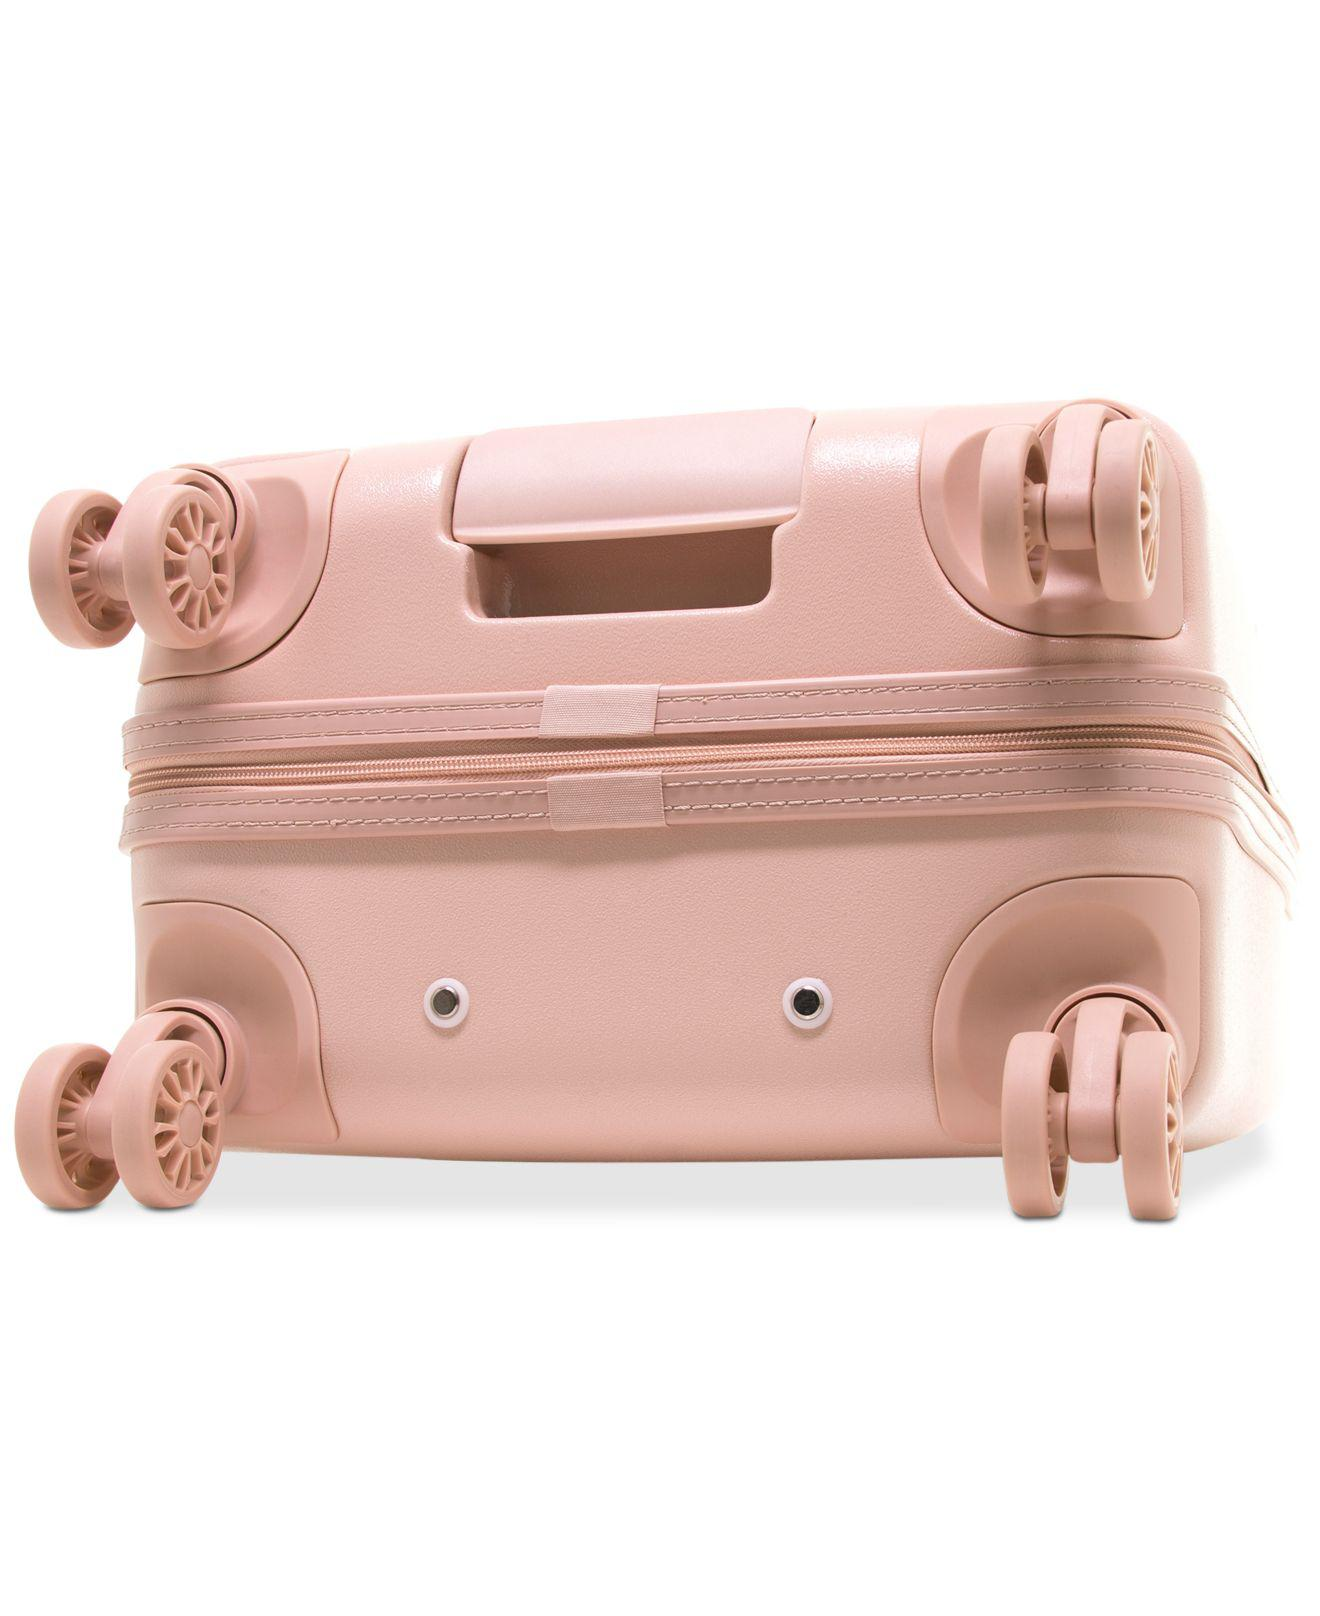 dkny allure 24quot hardside spinner suitcase created for